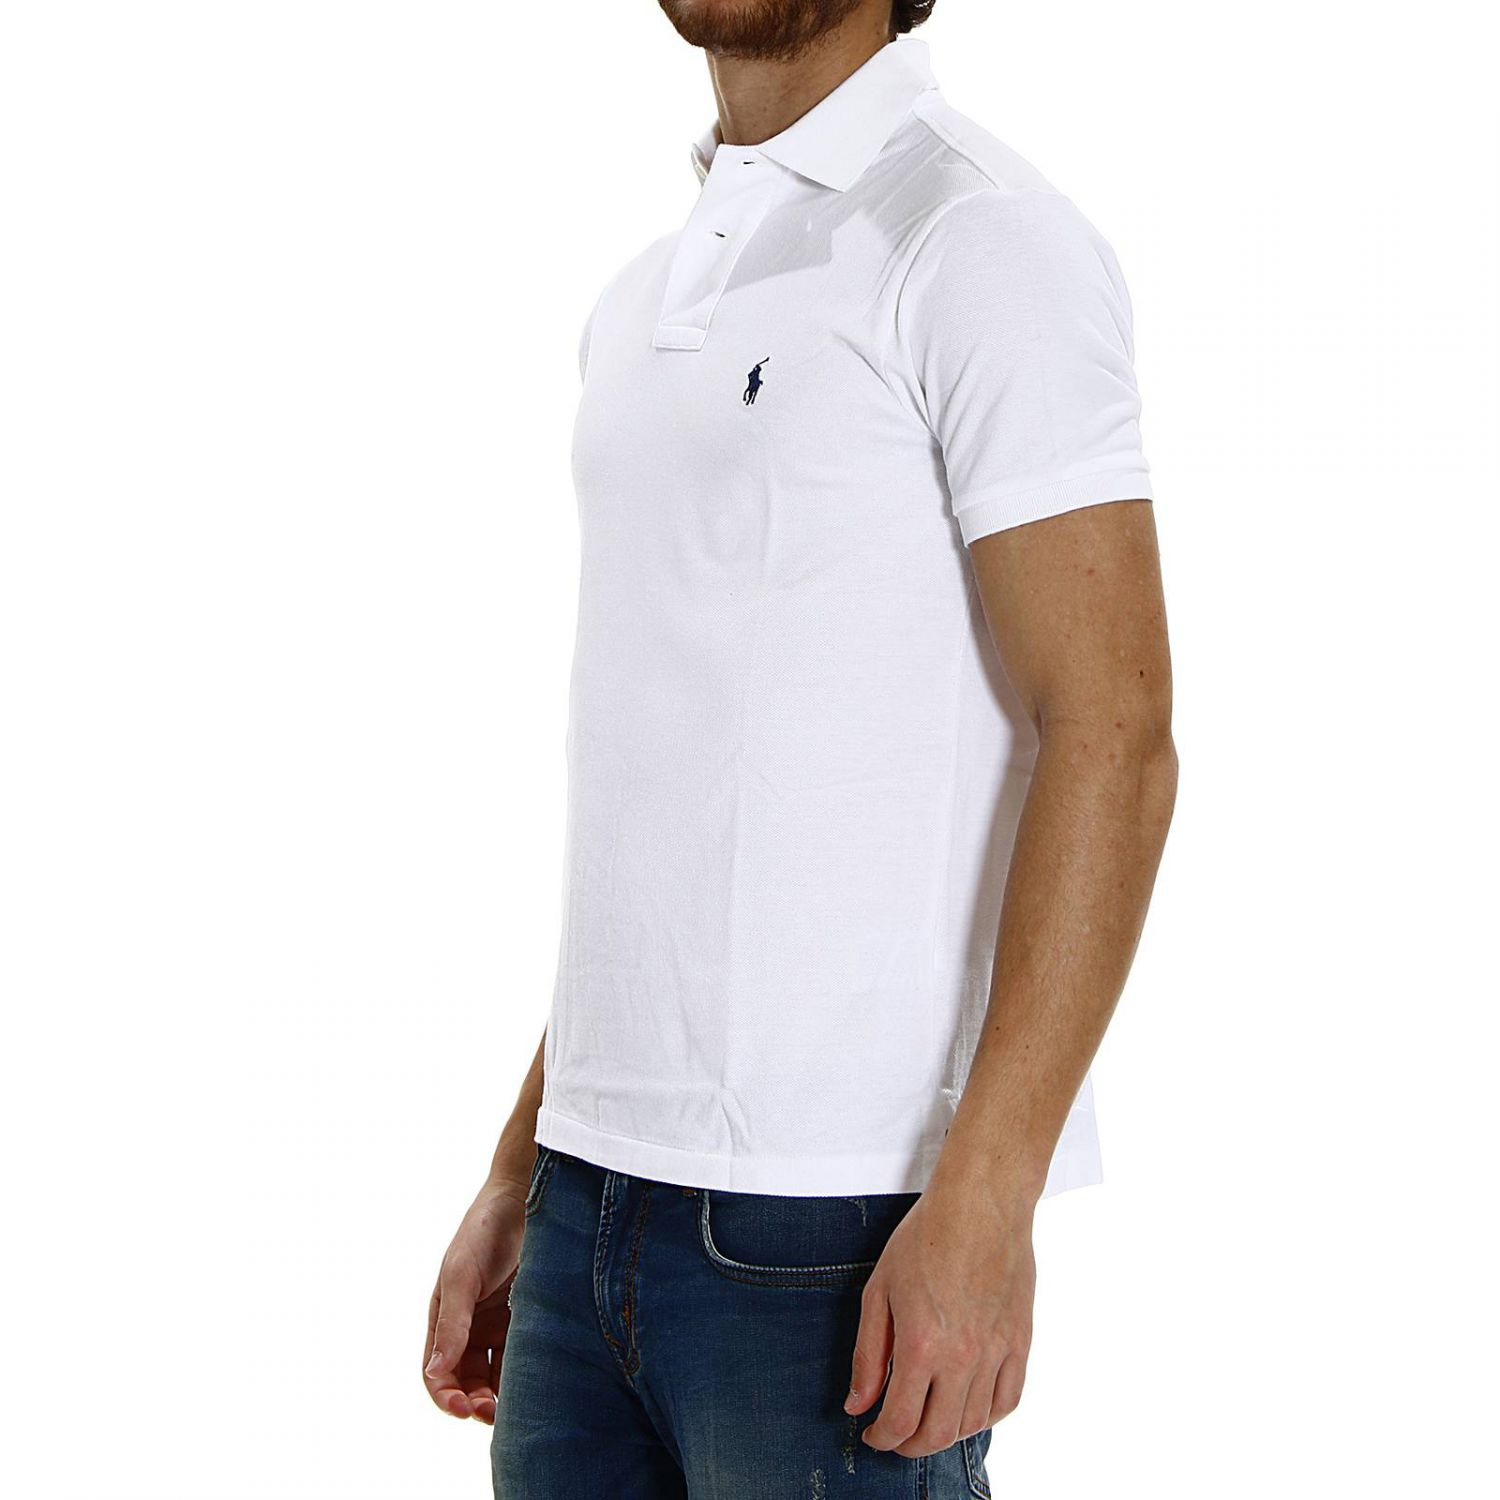 Polo ralph lauren short sleeve smocking slim fit polo t for Slim fit collared shirts